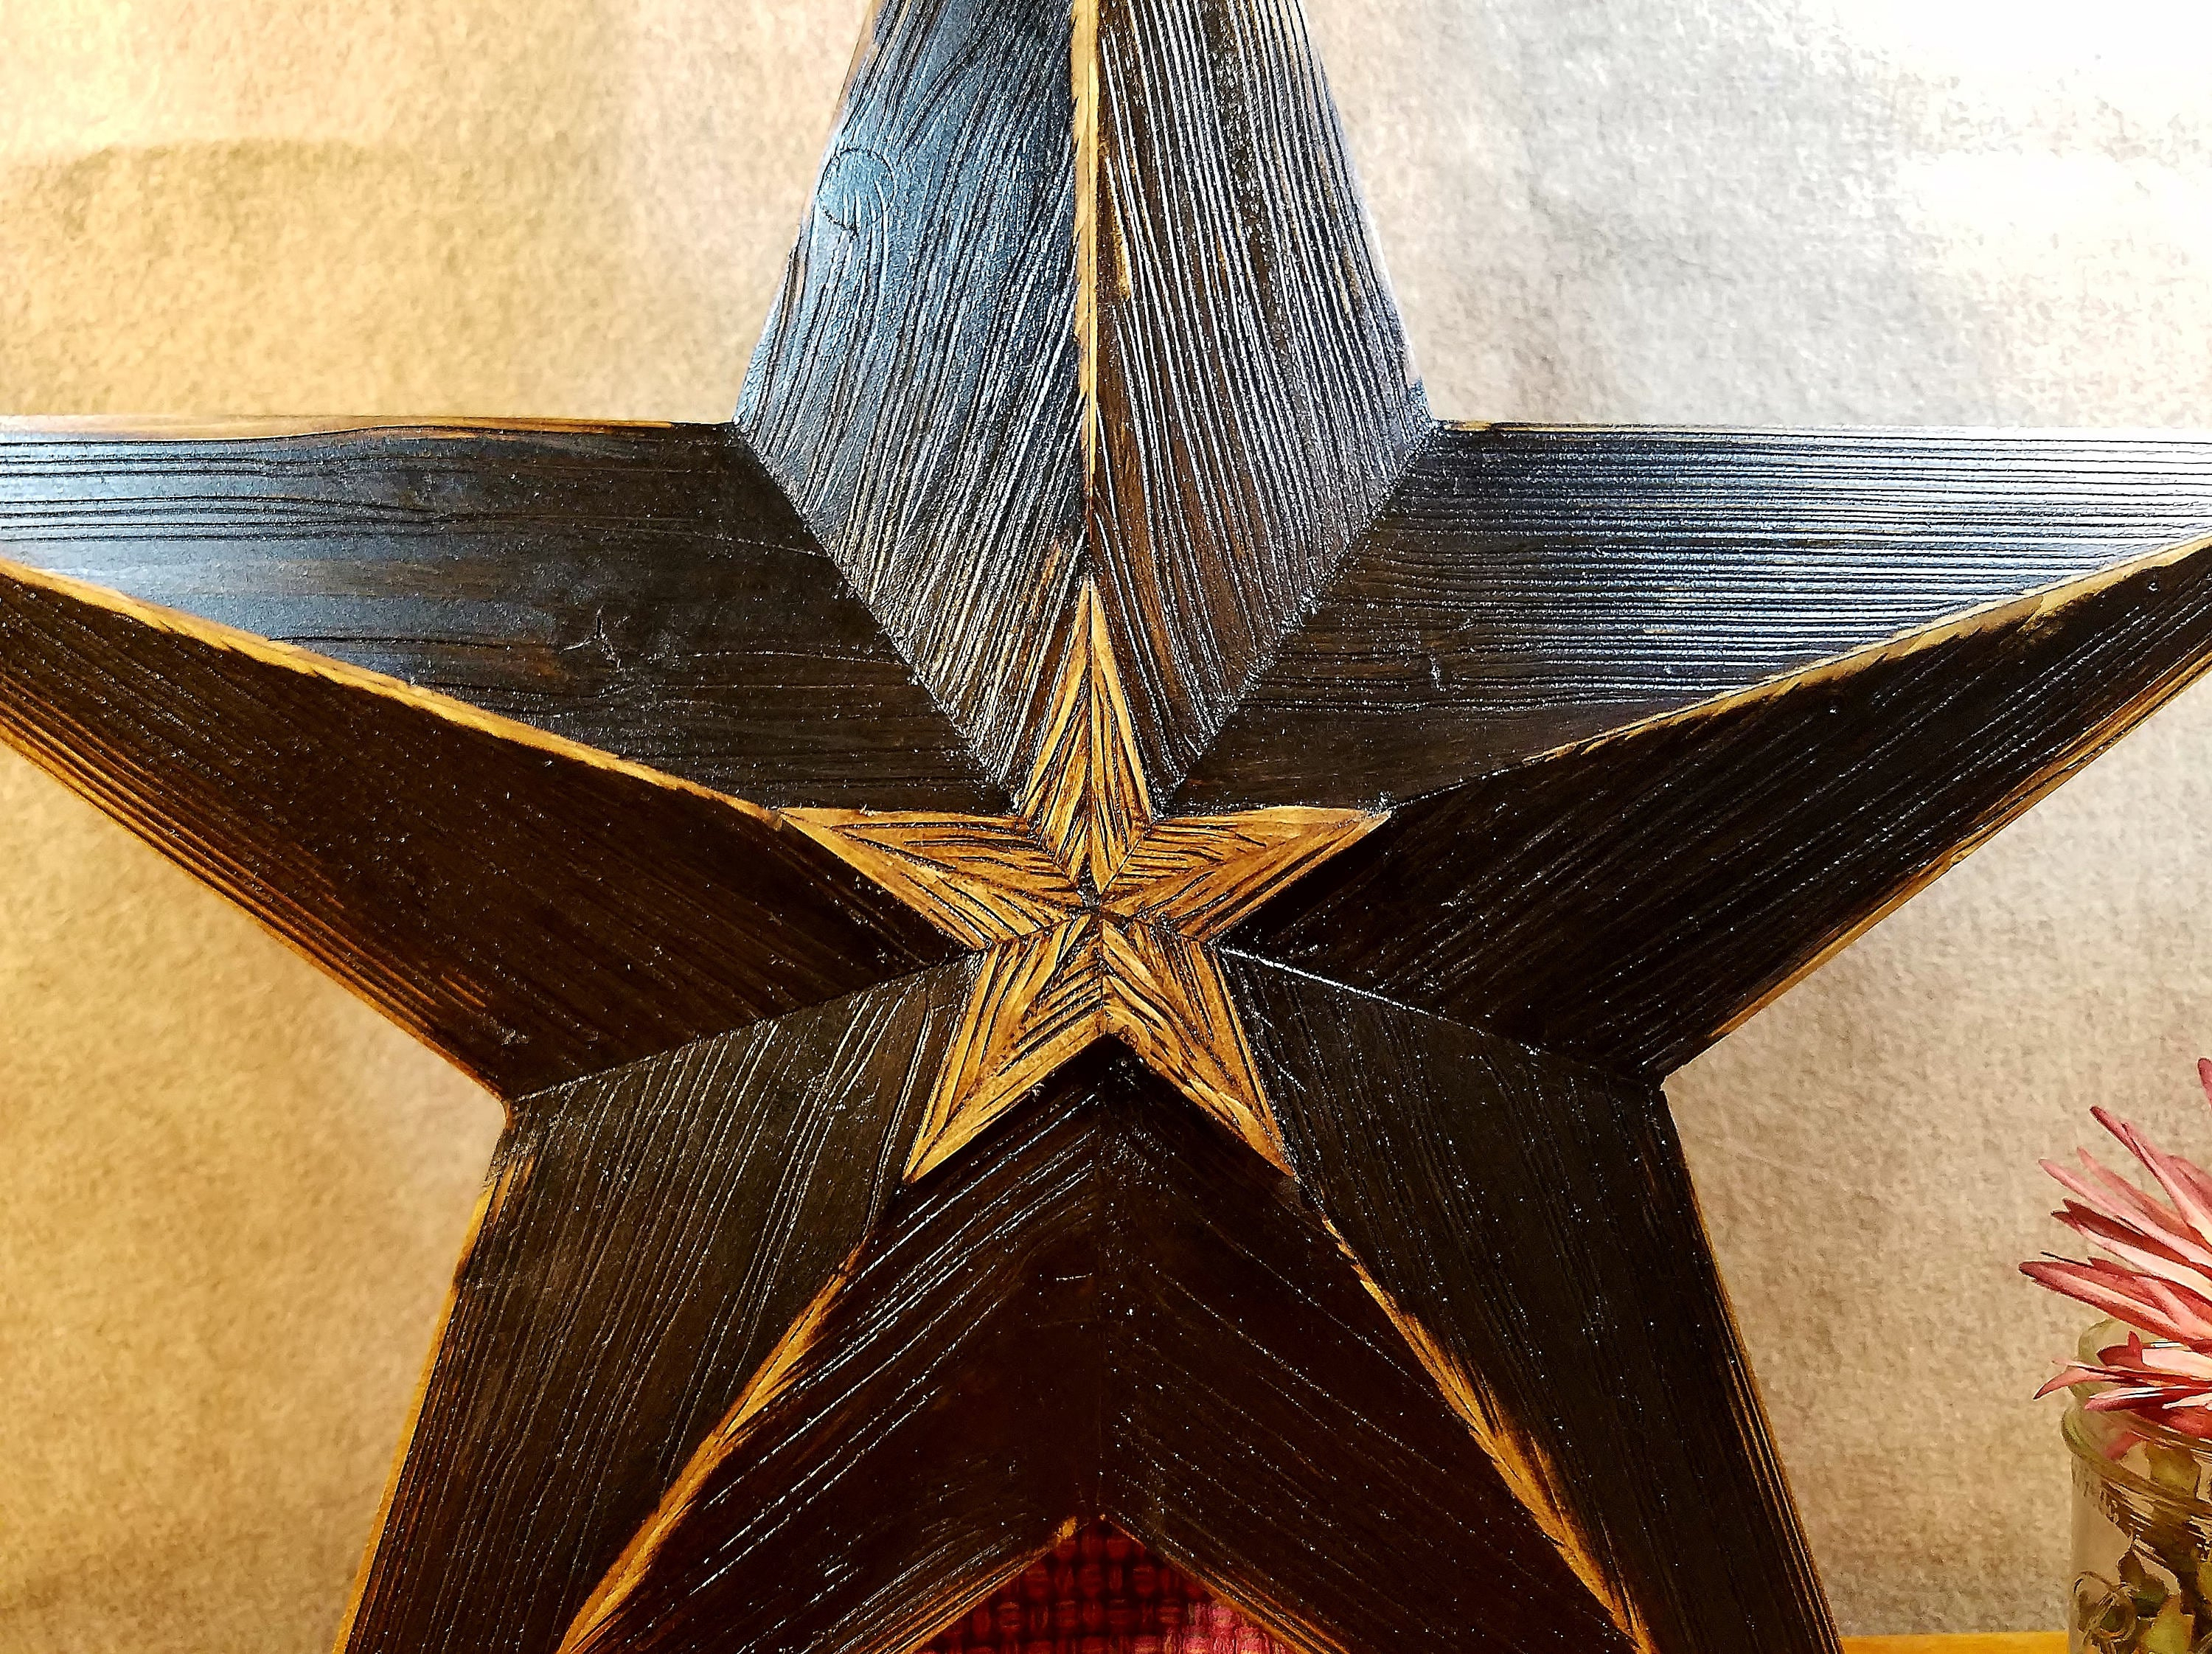 Rustic Wood Star, Large Barn Star, Black Rustic Star, Raised Center Star, Rustic Home Decor, Wood Wall Star Distressed Regarding Raised Star Wall Decor (View 4 of 30)